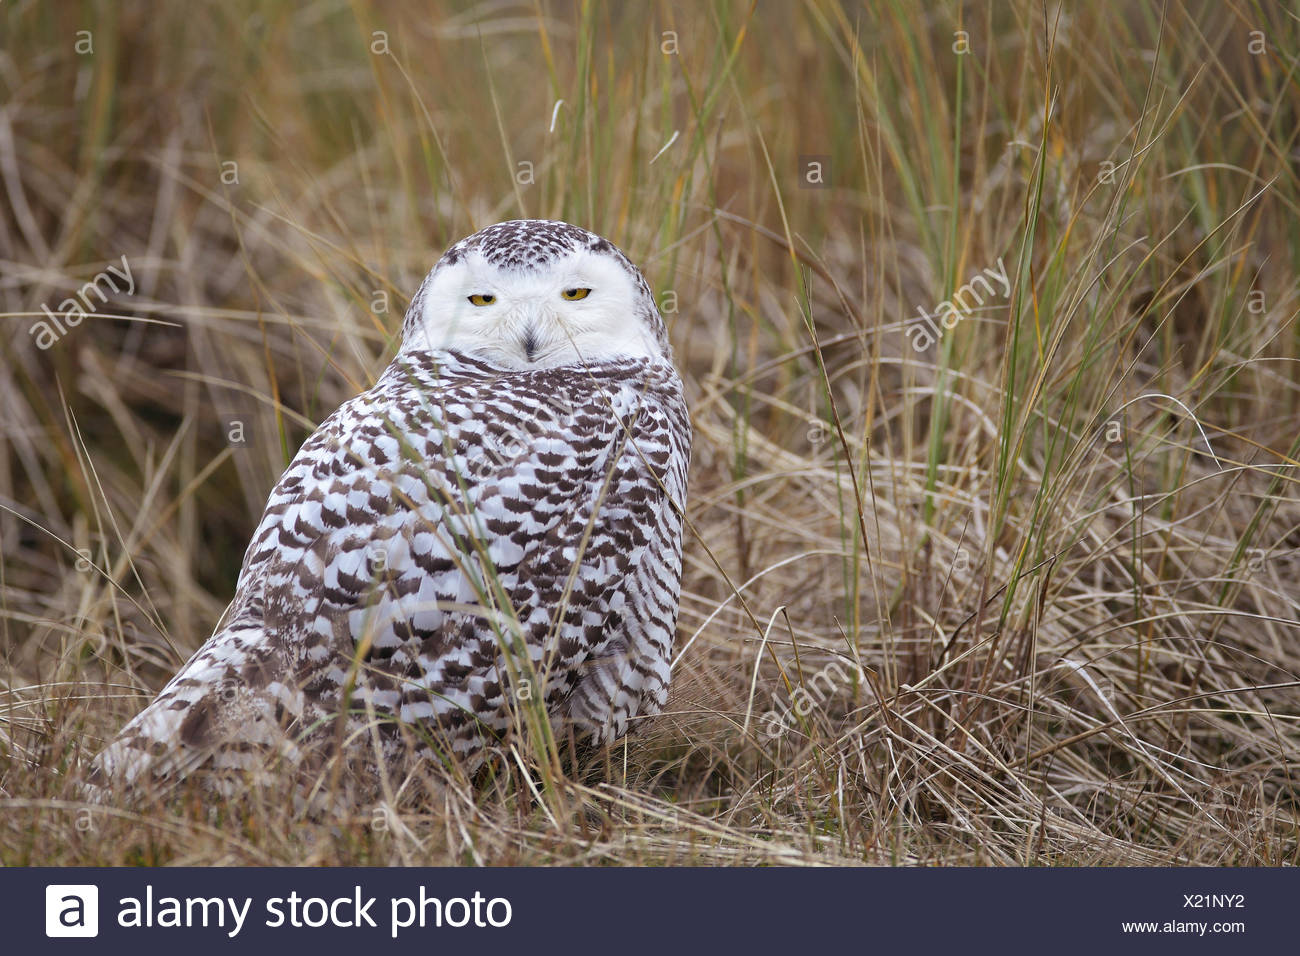 Snowy-owl resting in the dunes of the island Vlieland. A rarity for the Netherlands ! - Stock Image